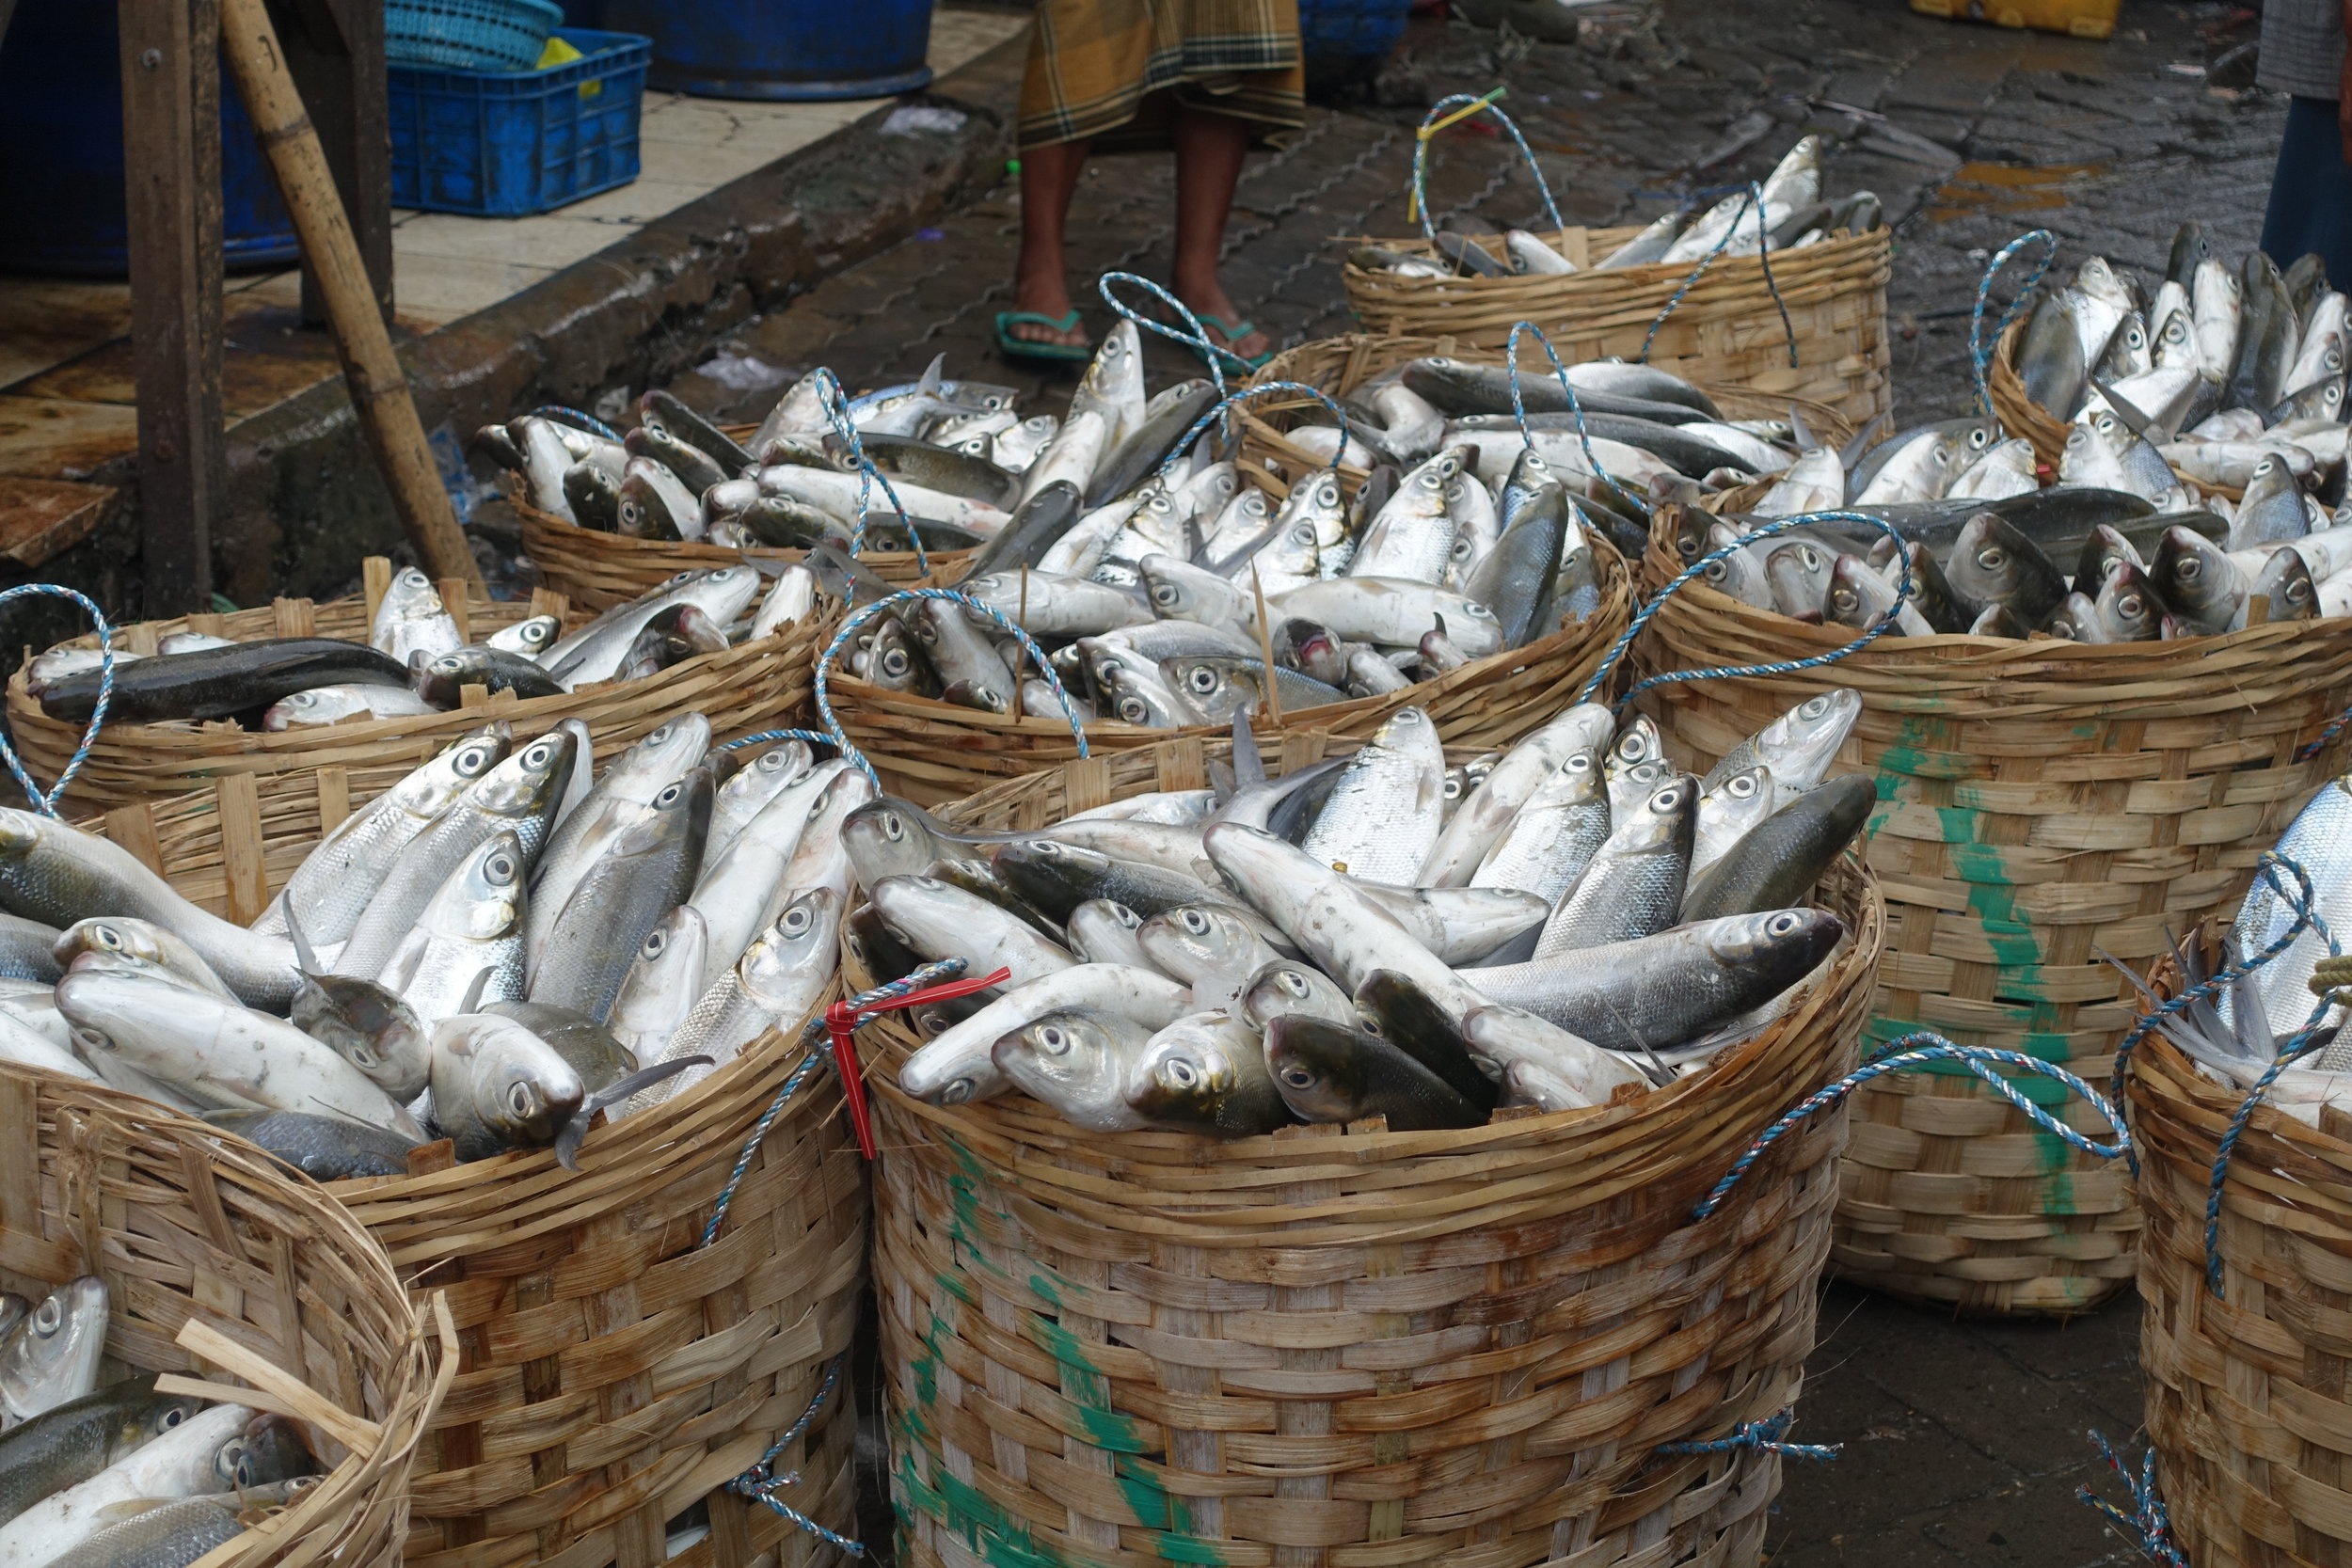 surabaya-fish-market-baskets.JPG